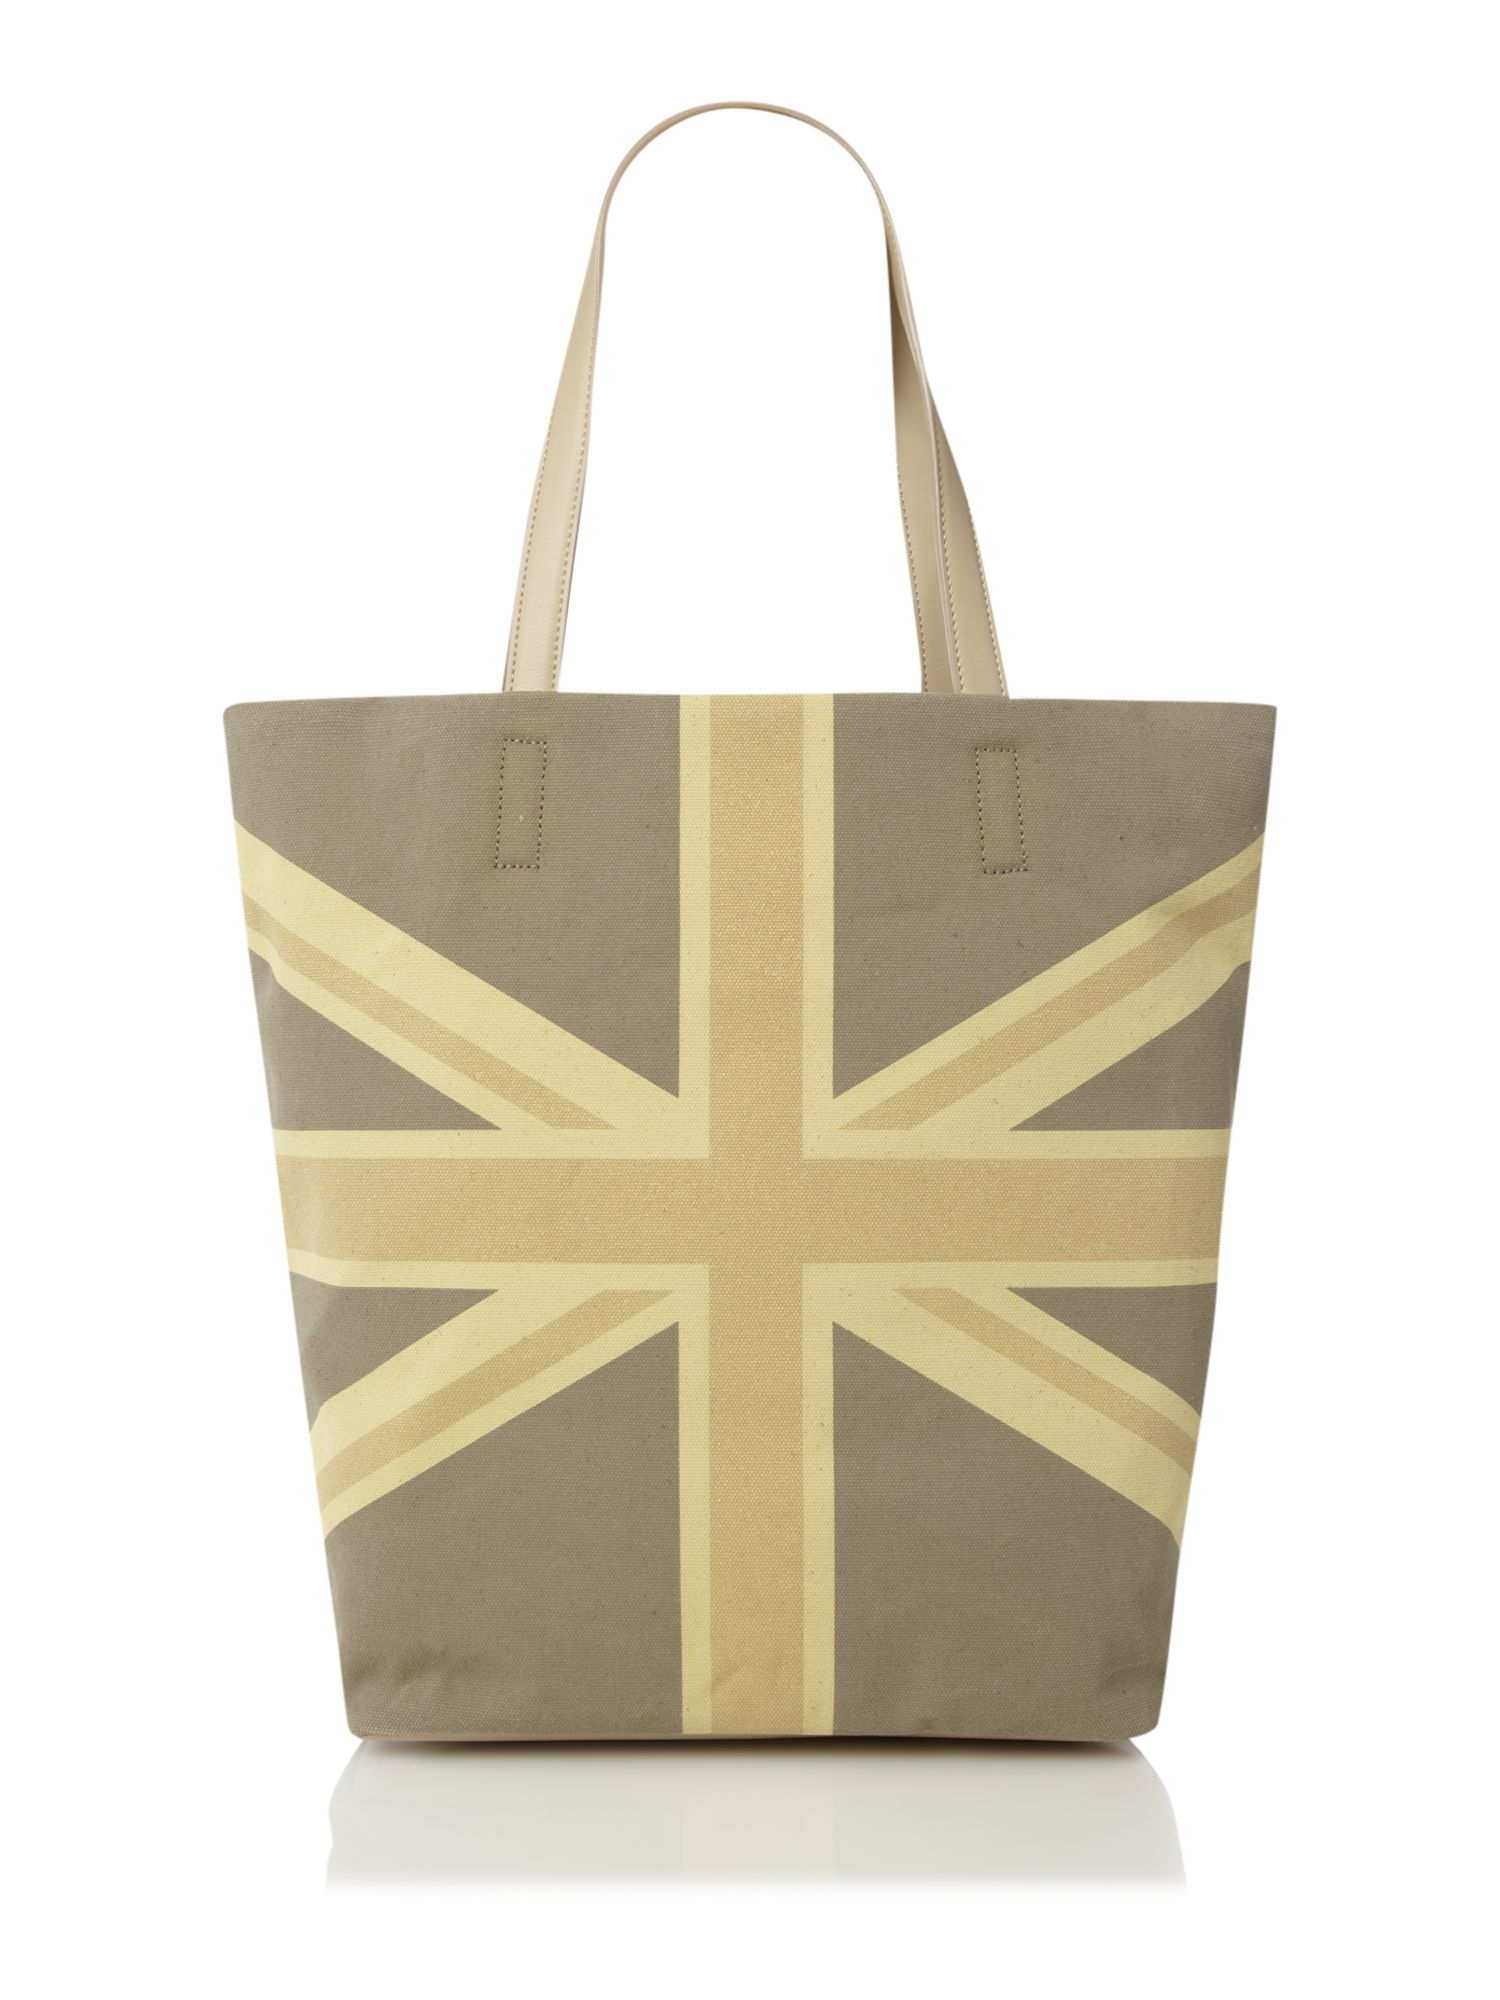 Union jack canvas tote bag